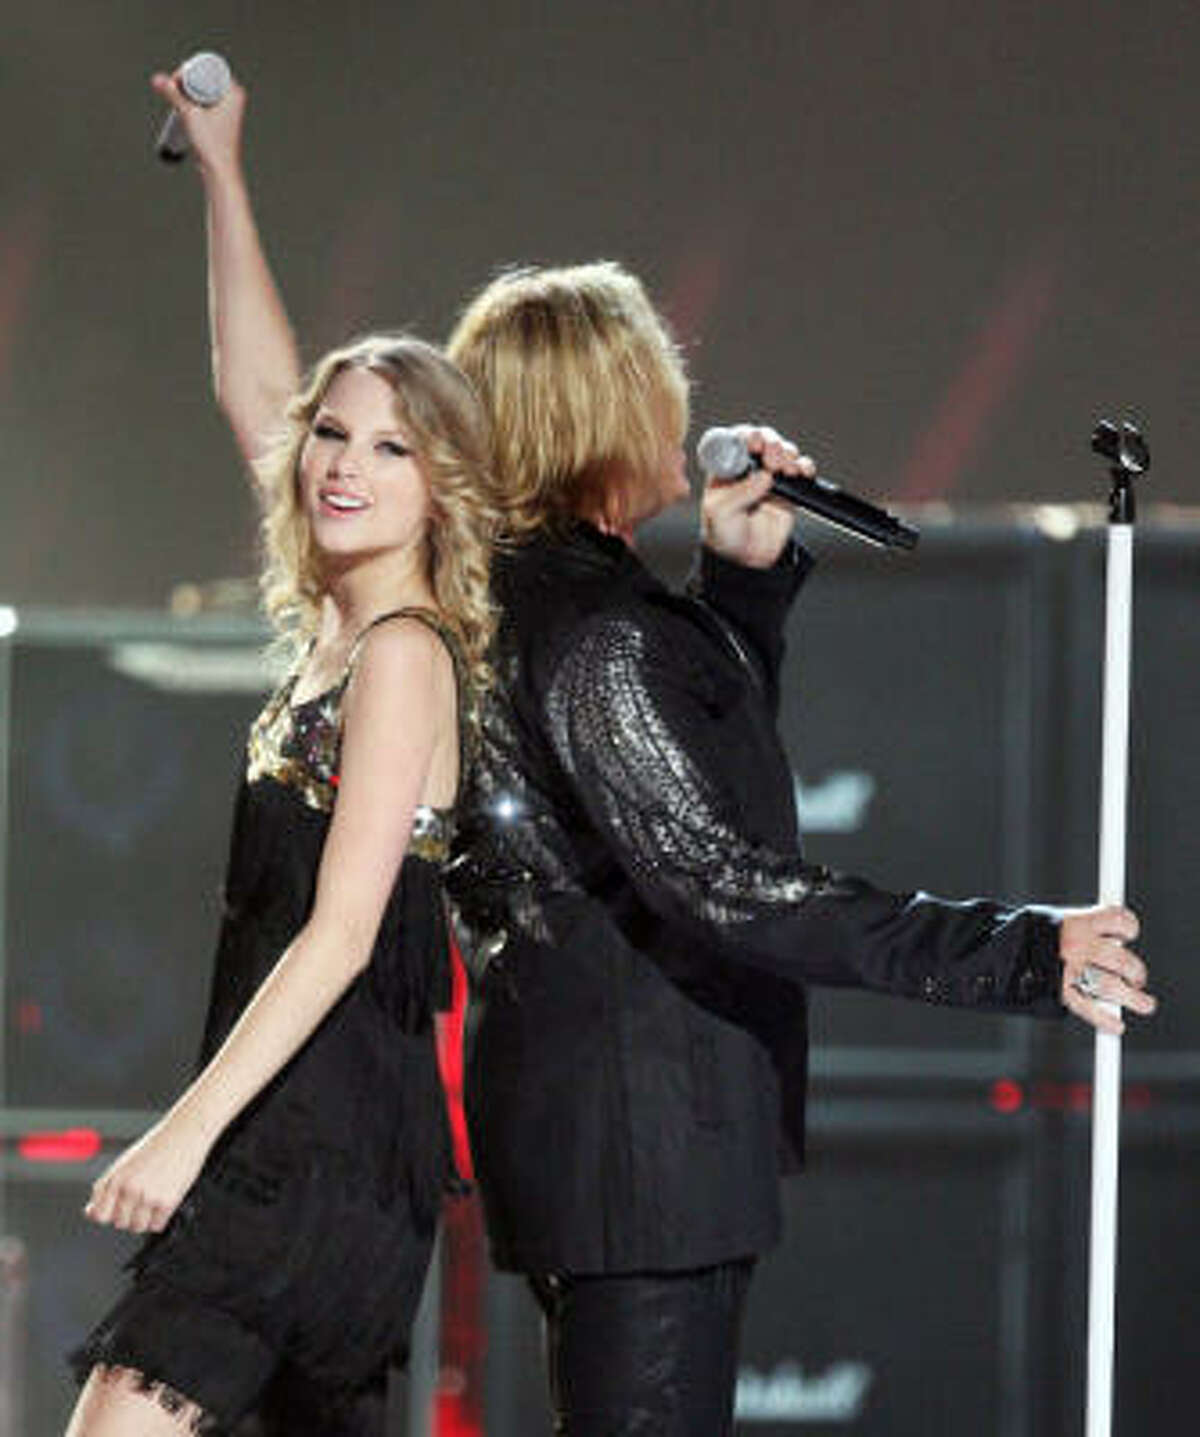 Taylor Swift joins Joe Elliott and Def Leppard for the band's Pour Some Sugar On Me. (She's 19; he's 49 for those of you keeping score out there.)